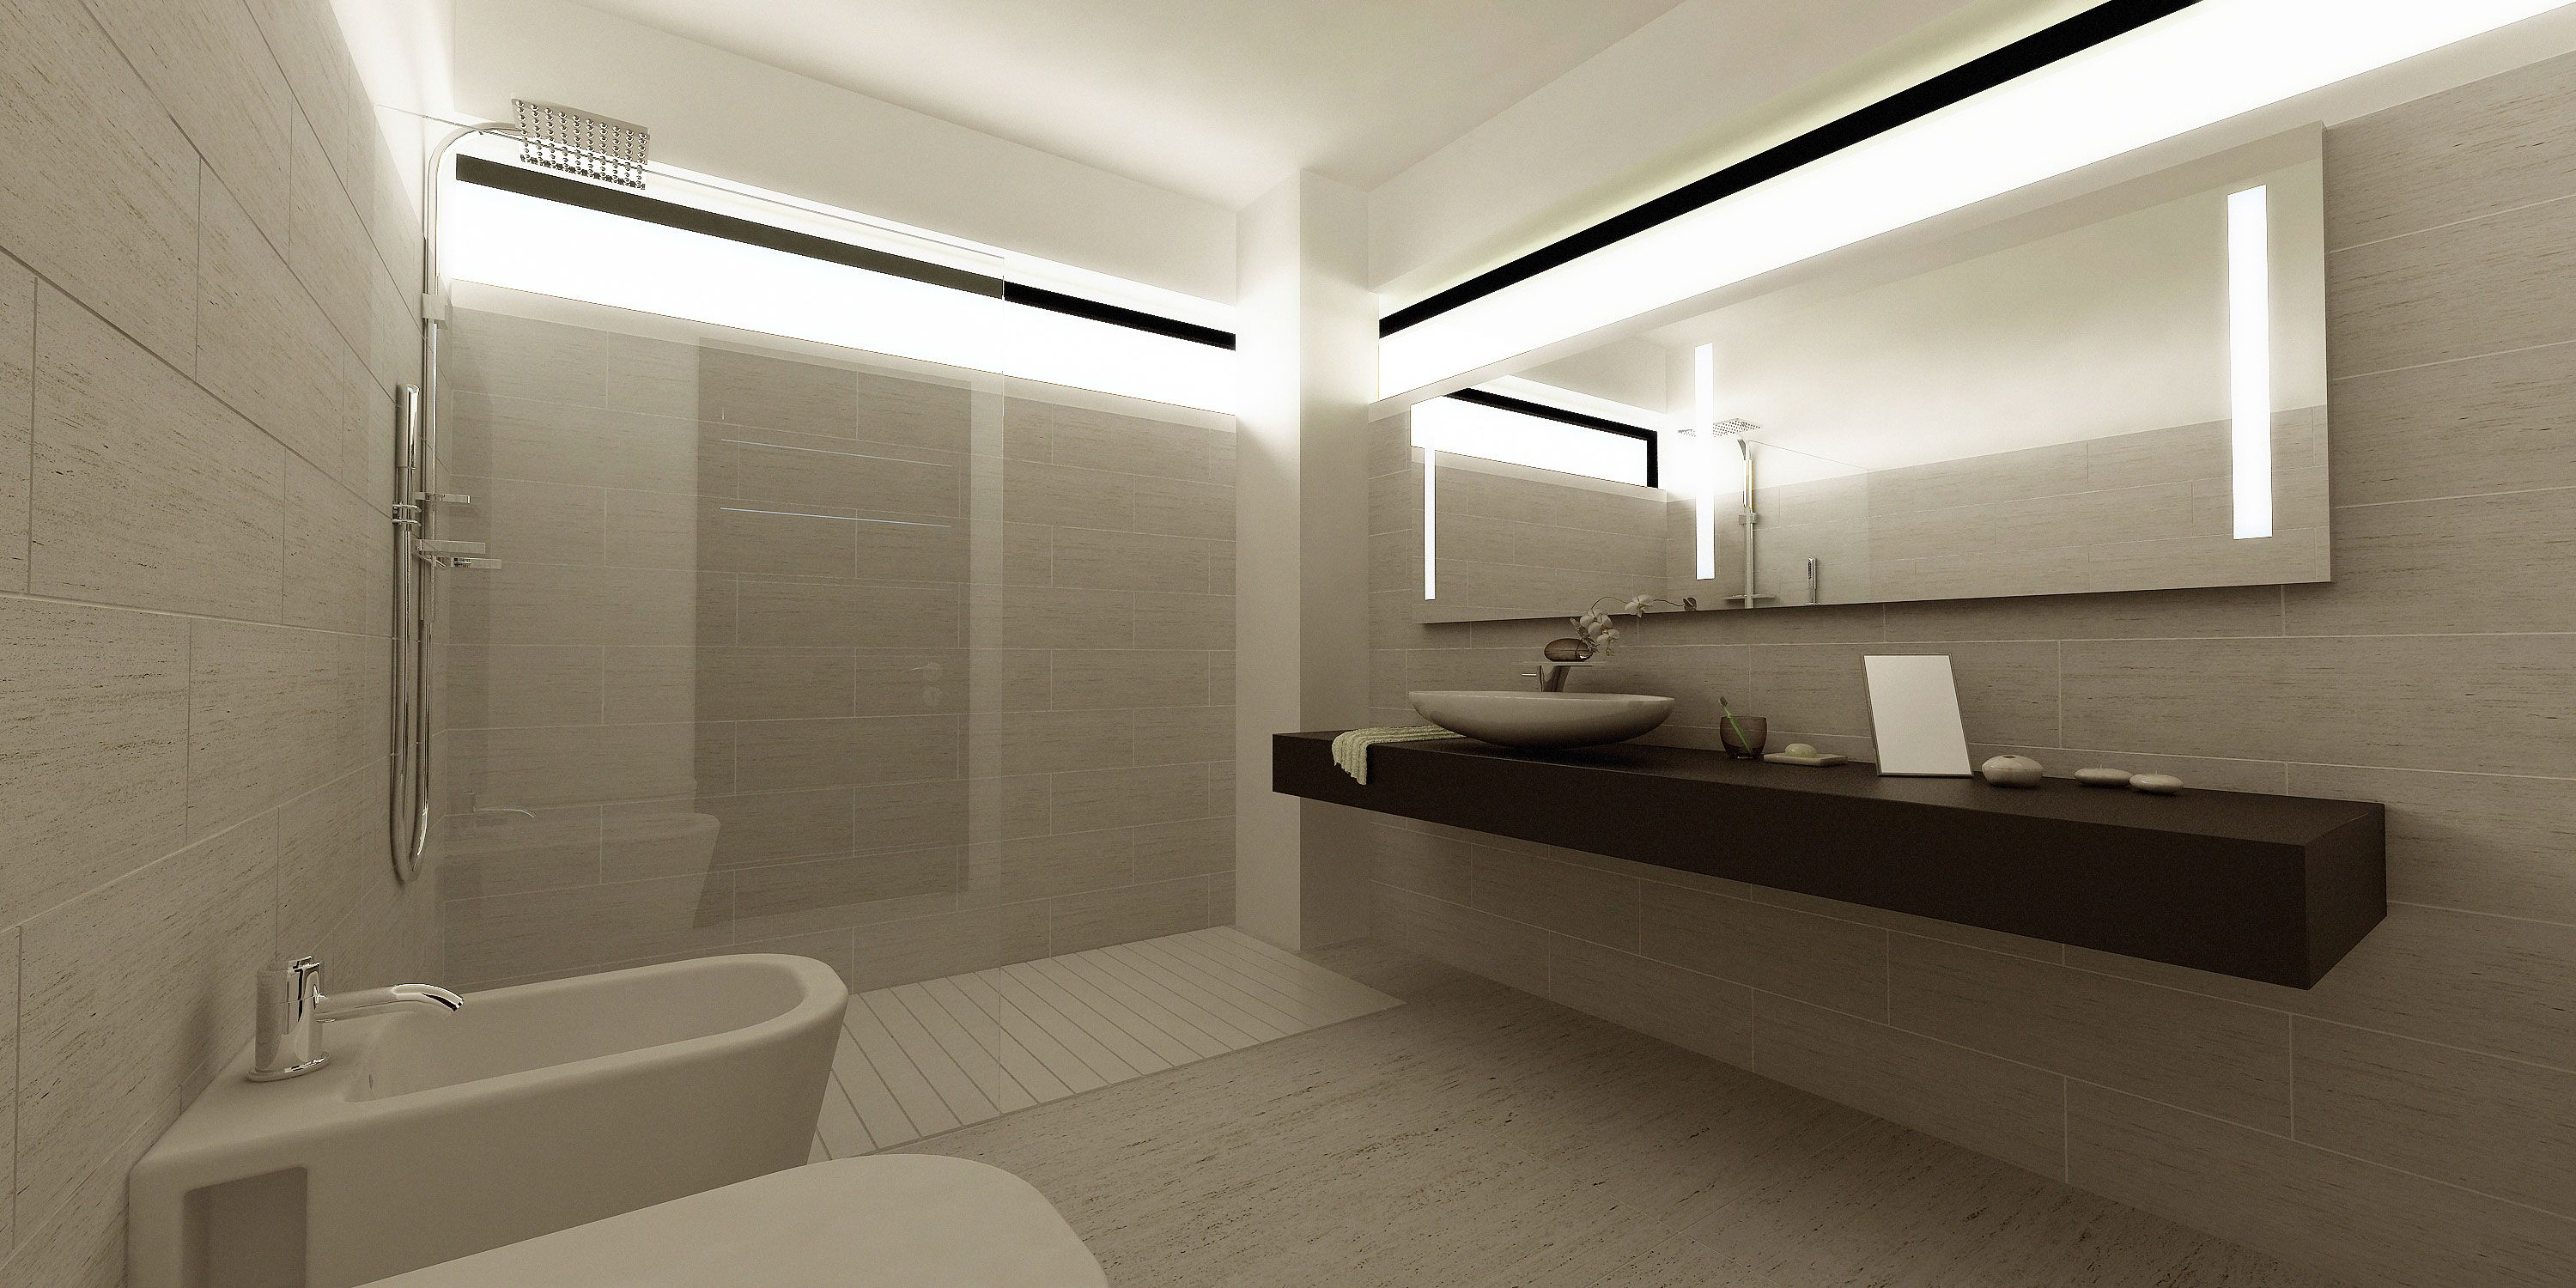 Bathroom interior design in bangladesh office  modern and simple design  pinterest  simple designs